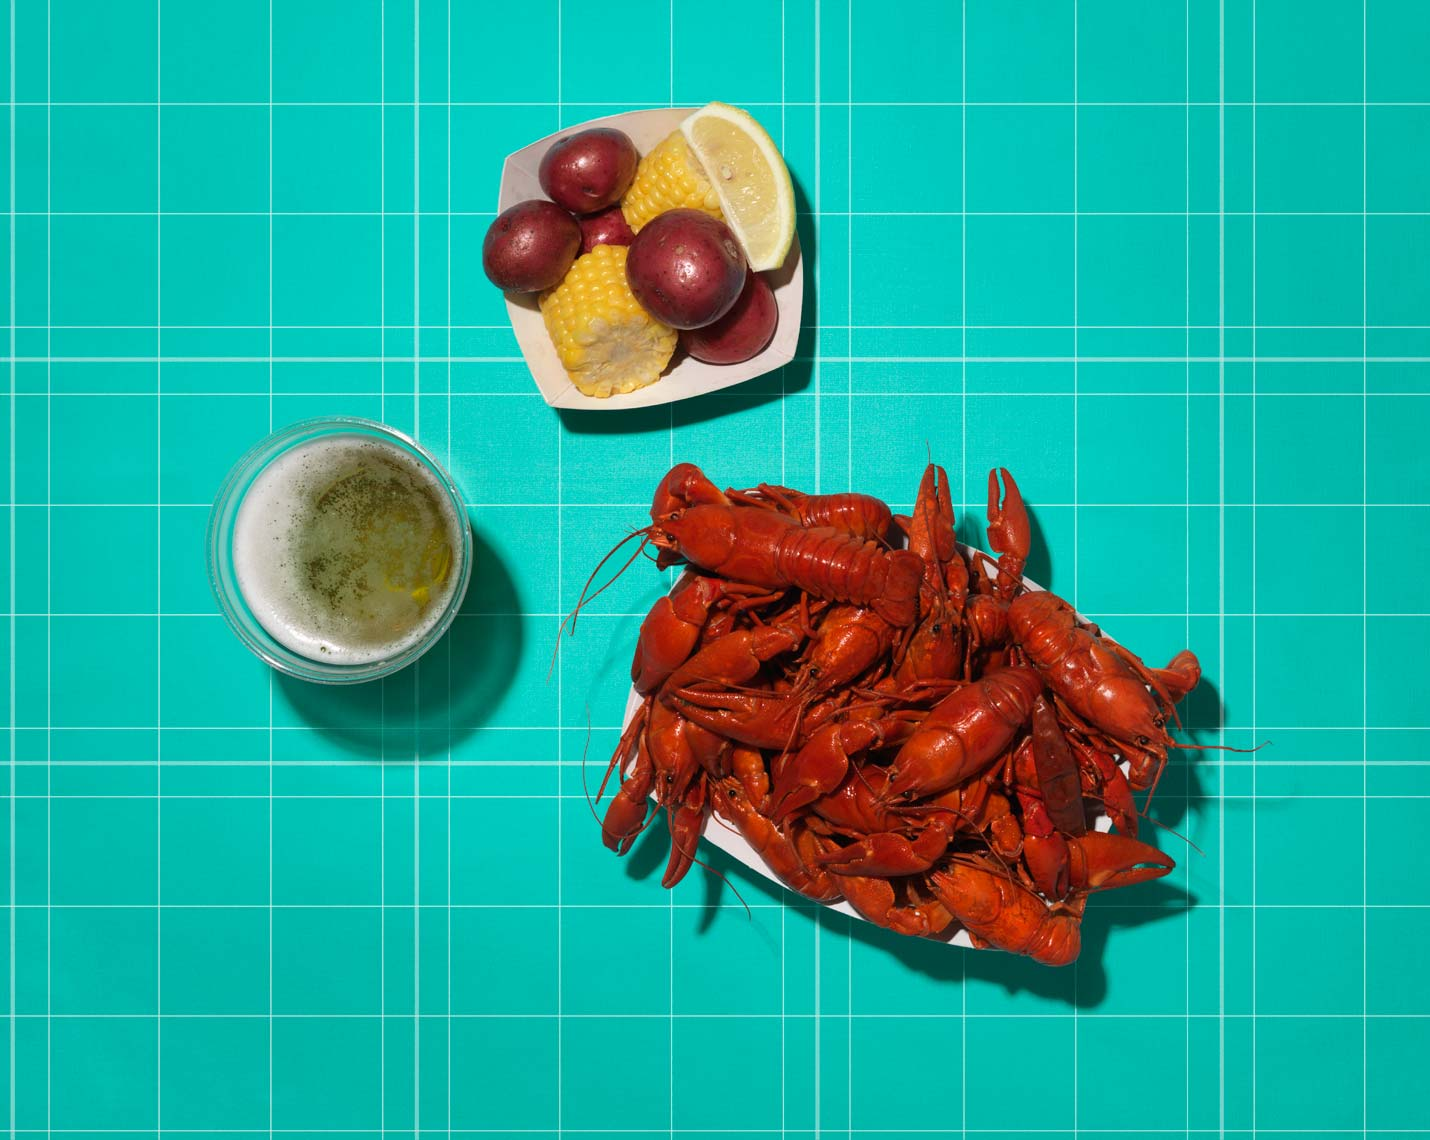 crawfish and potatoes treat new orleans jazz fest